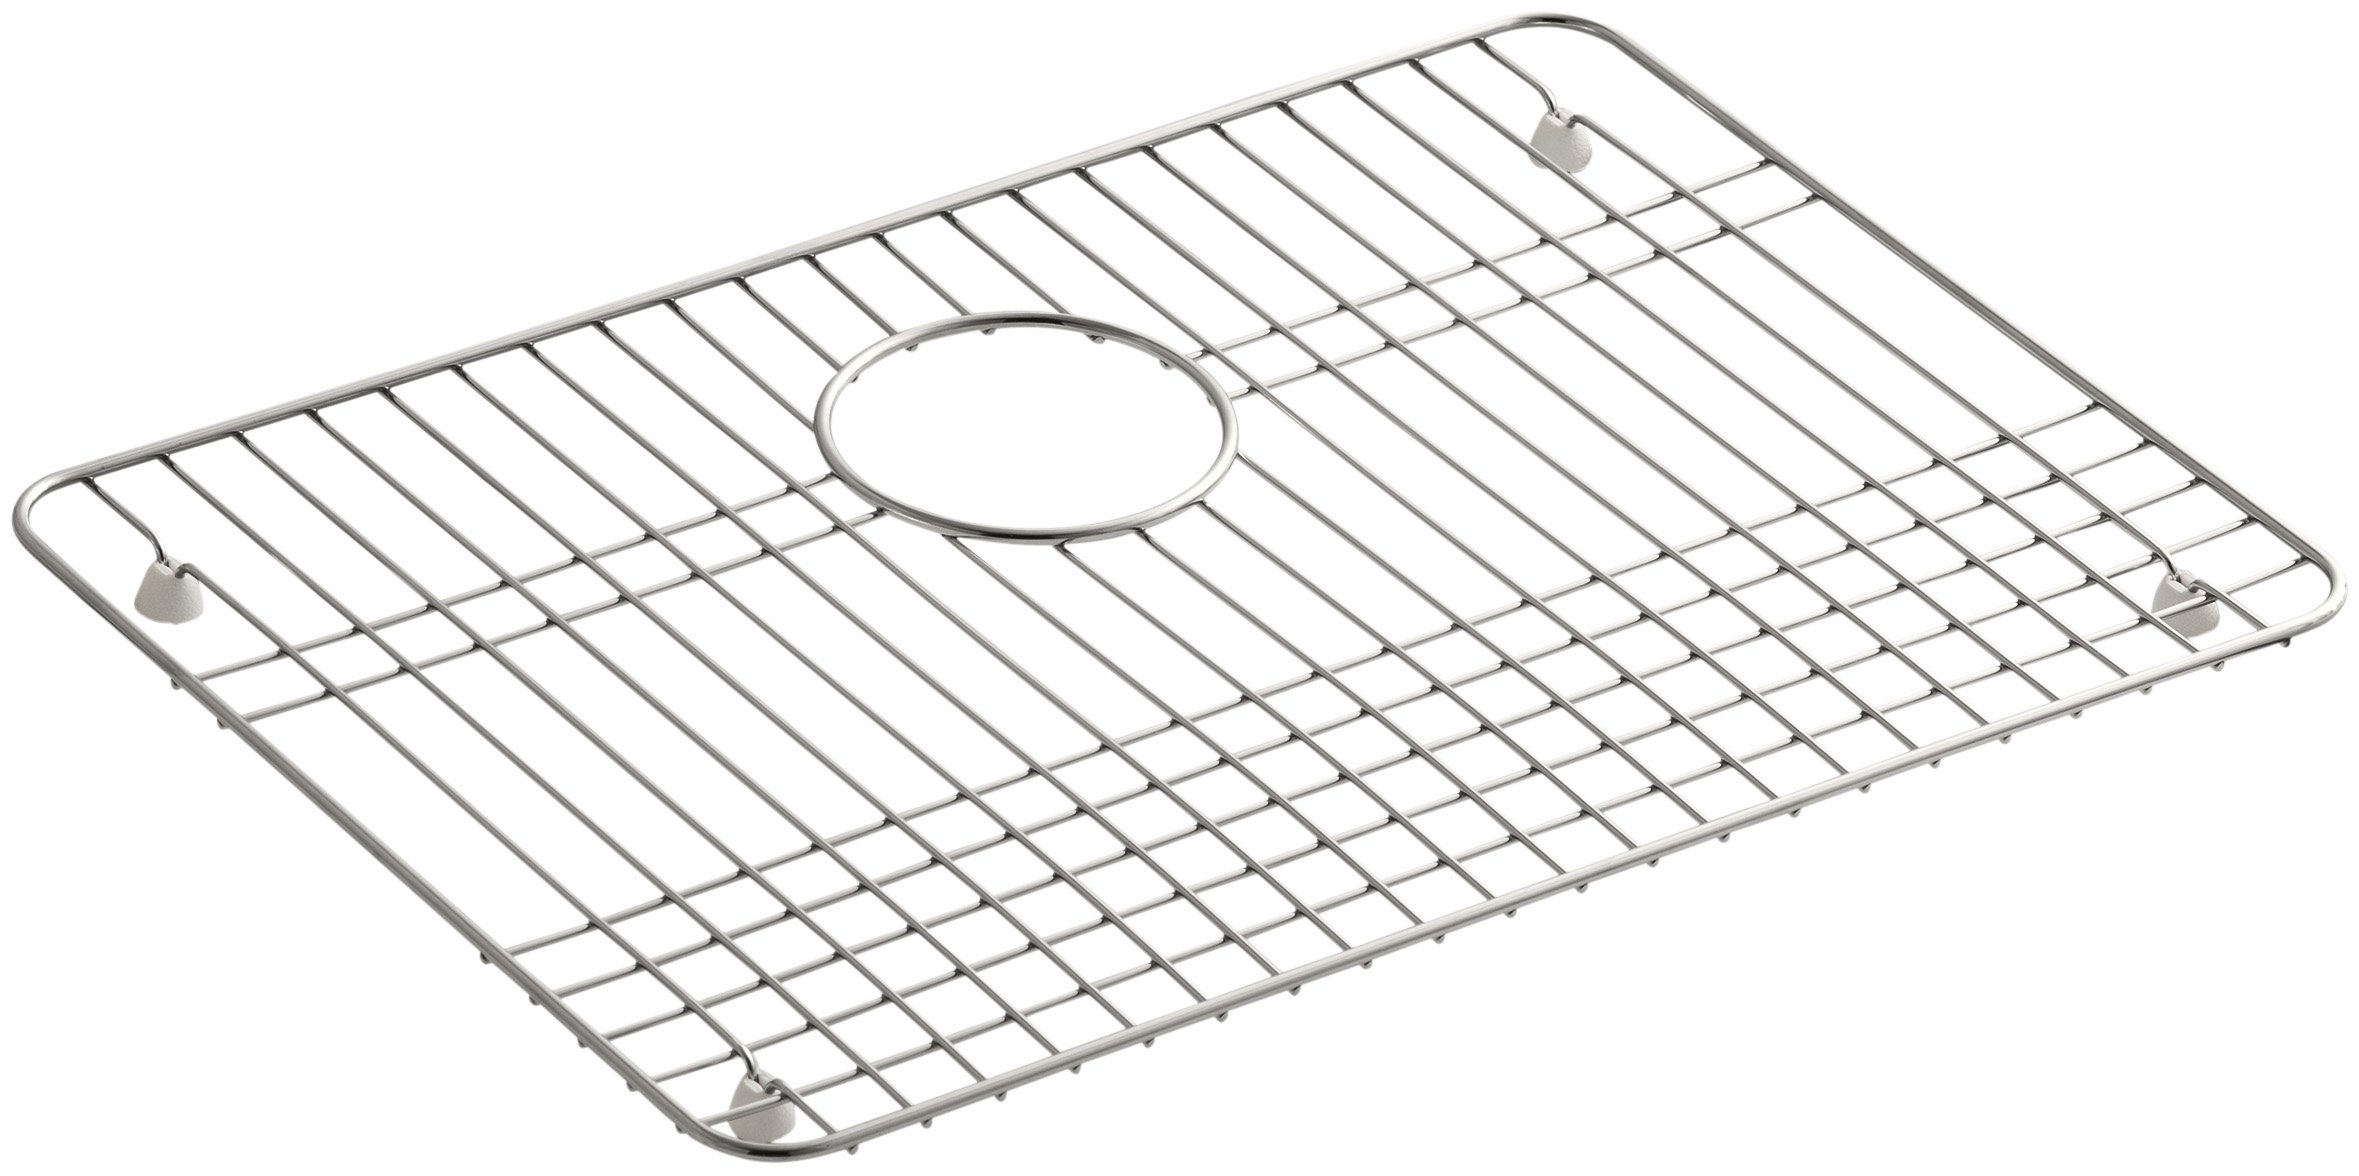 K-3192-ST Sink Rack for Ballad Utility Sink and Select Undertone and Iron/Tones Kitchen Sinks, Stainless Steel by Kohler